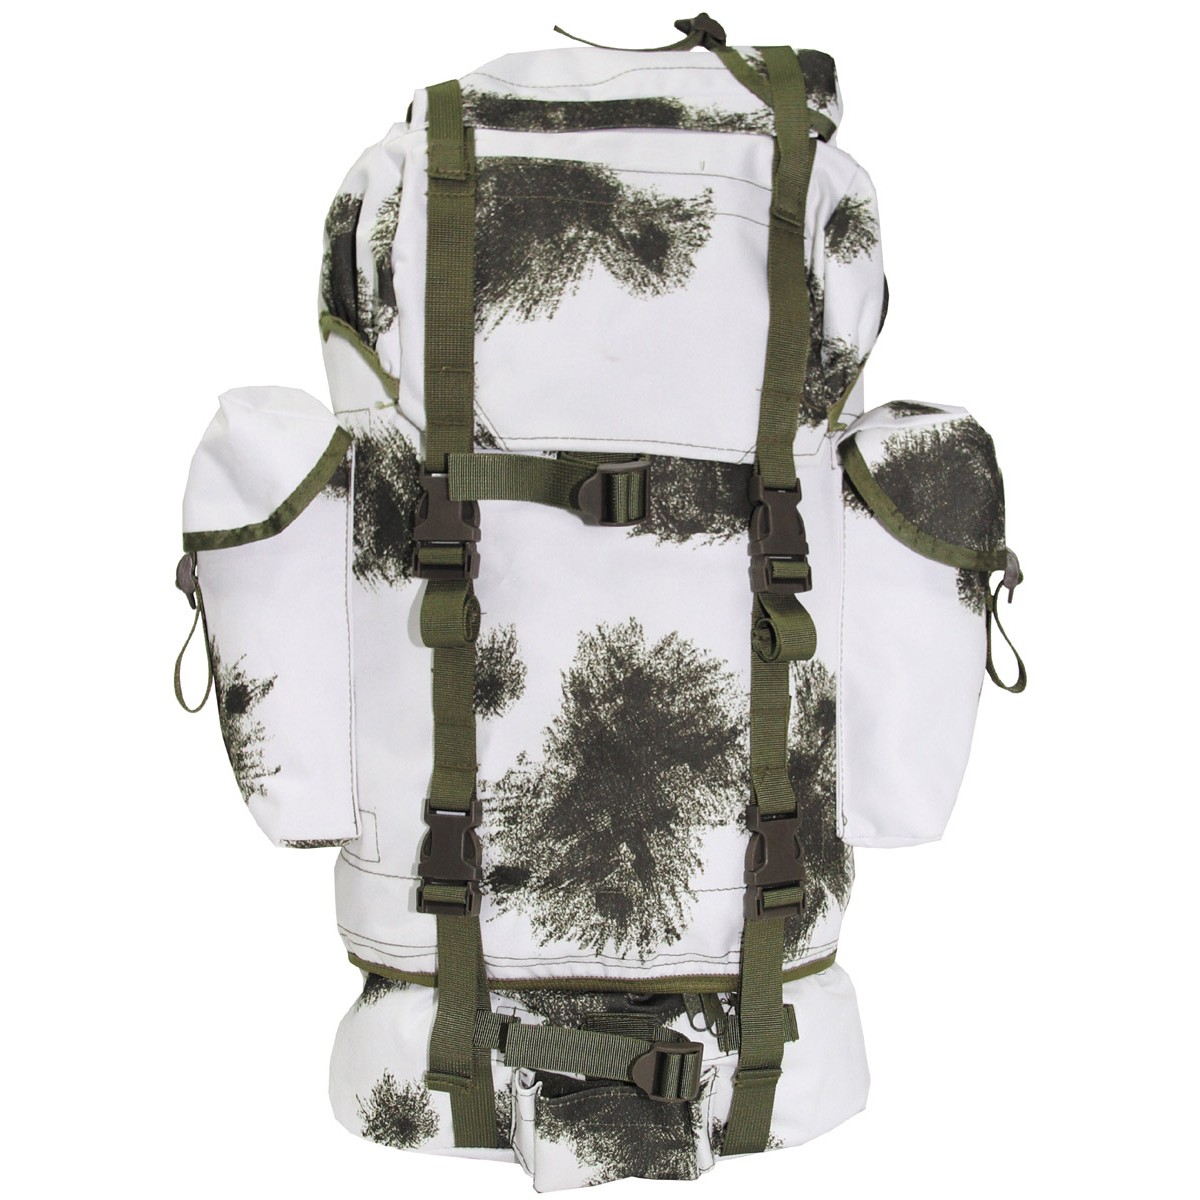 Military Patrol Expedition Backpack Large 65L - Winter Camo 2